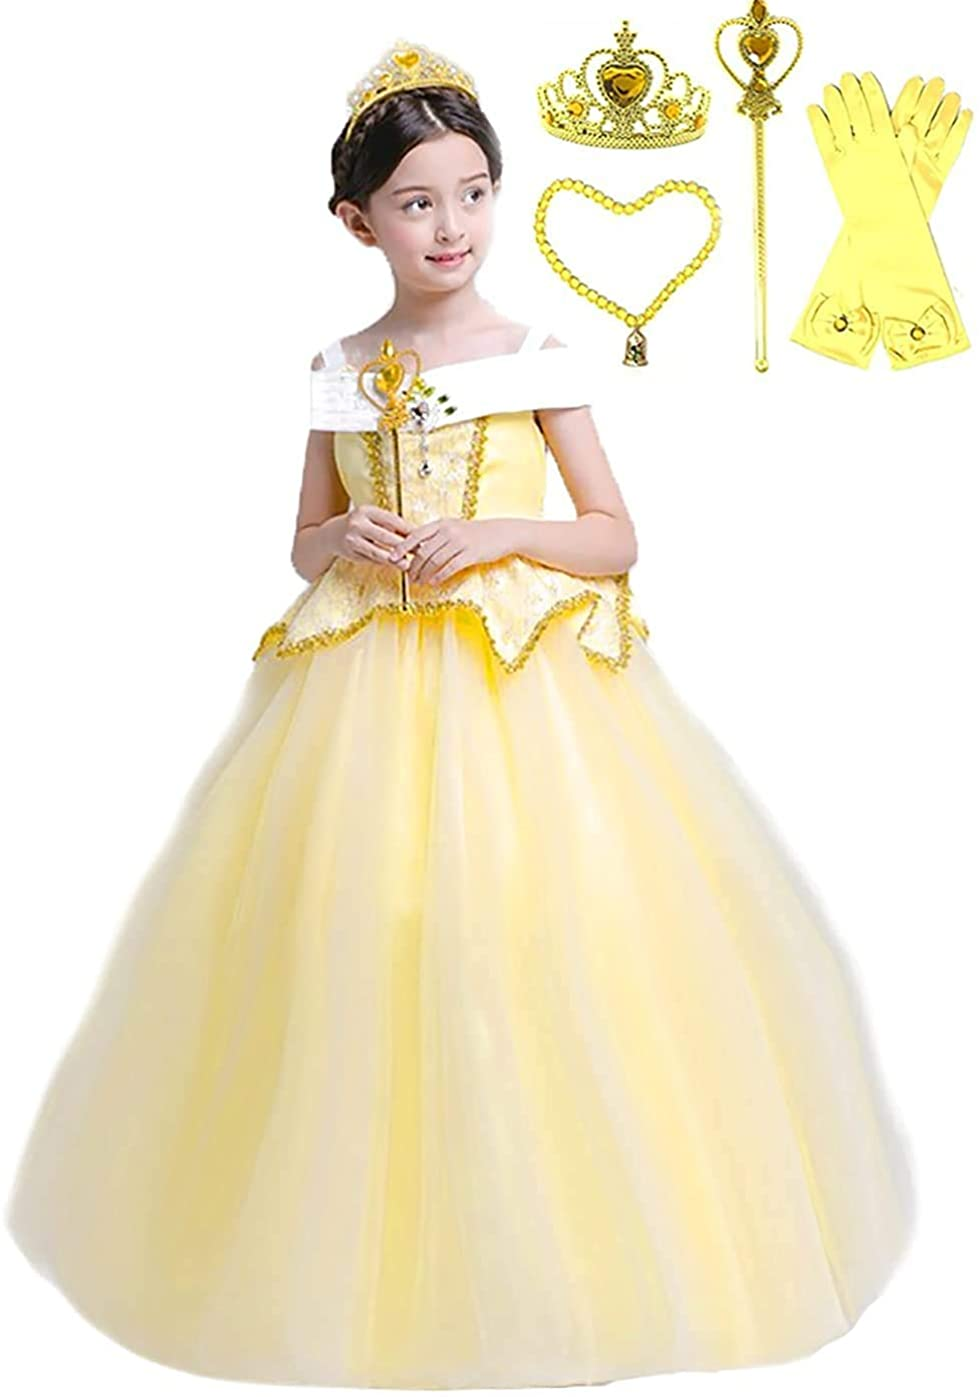 Romy's Collection Elegant Belle Yellow Party Princess Costume Dress Up Set (6-7, Yellow)